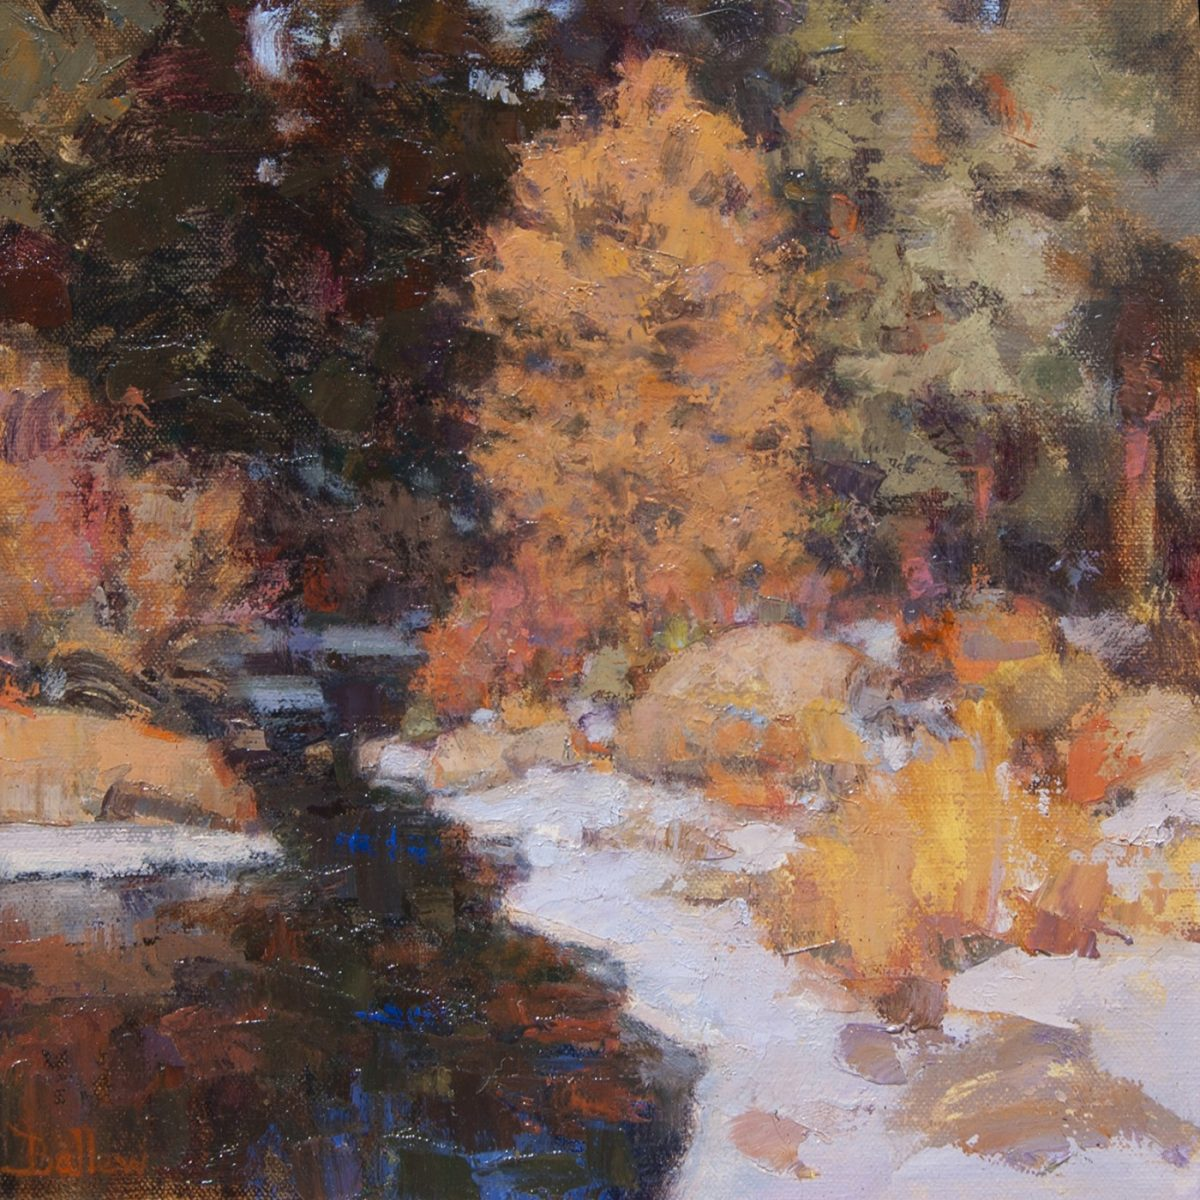 Spring Snow Bear Creek Painting by David Ballew